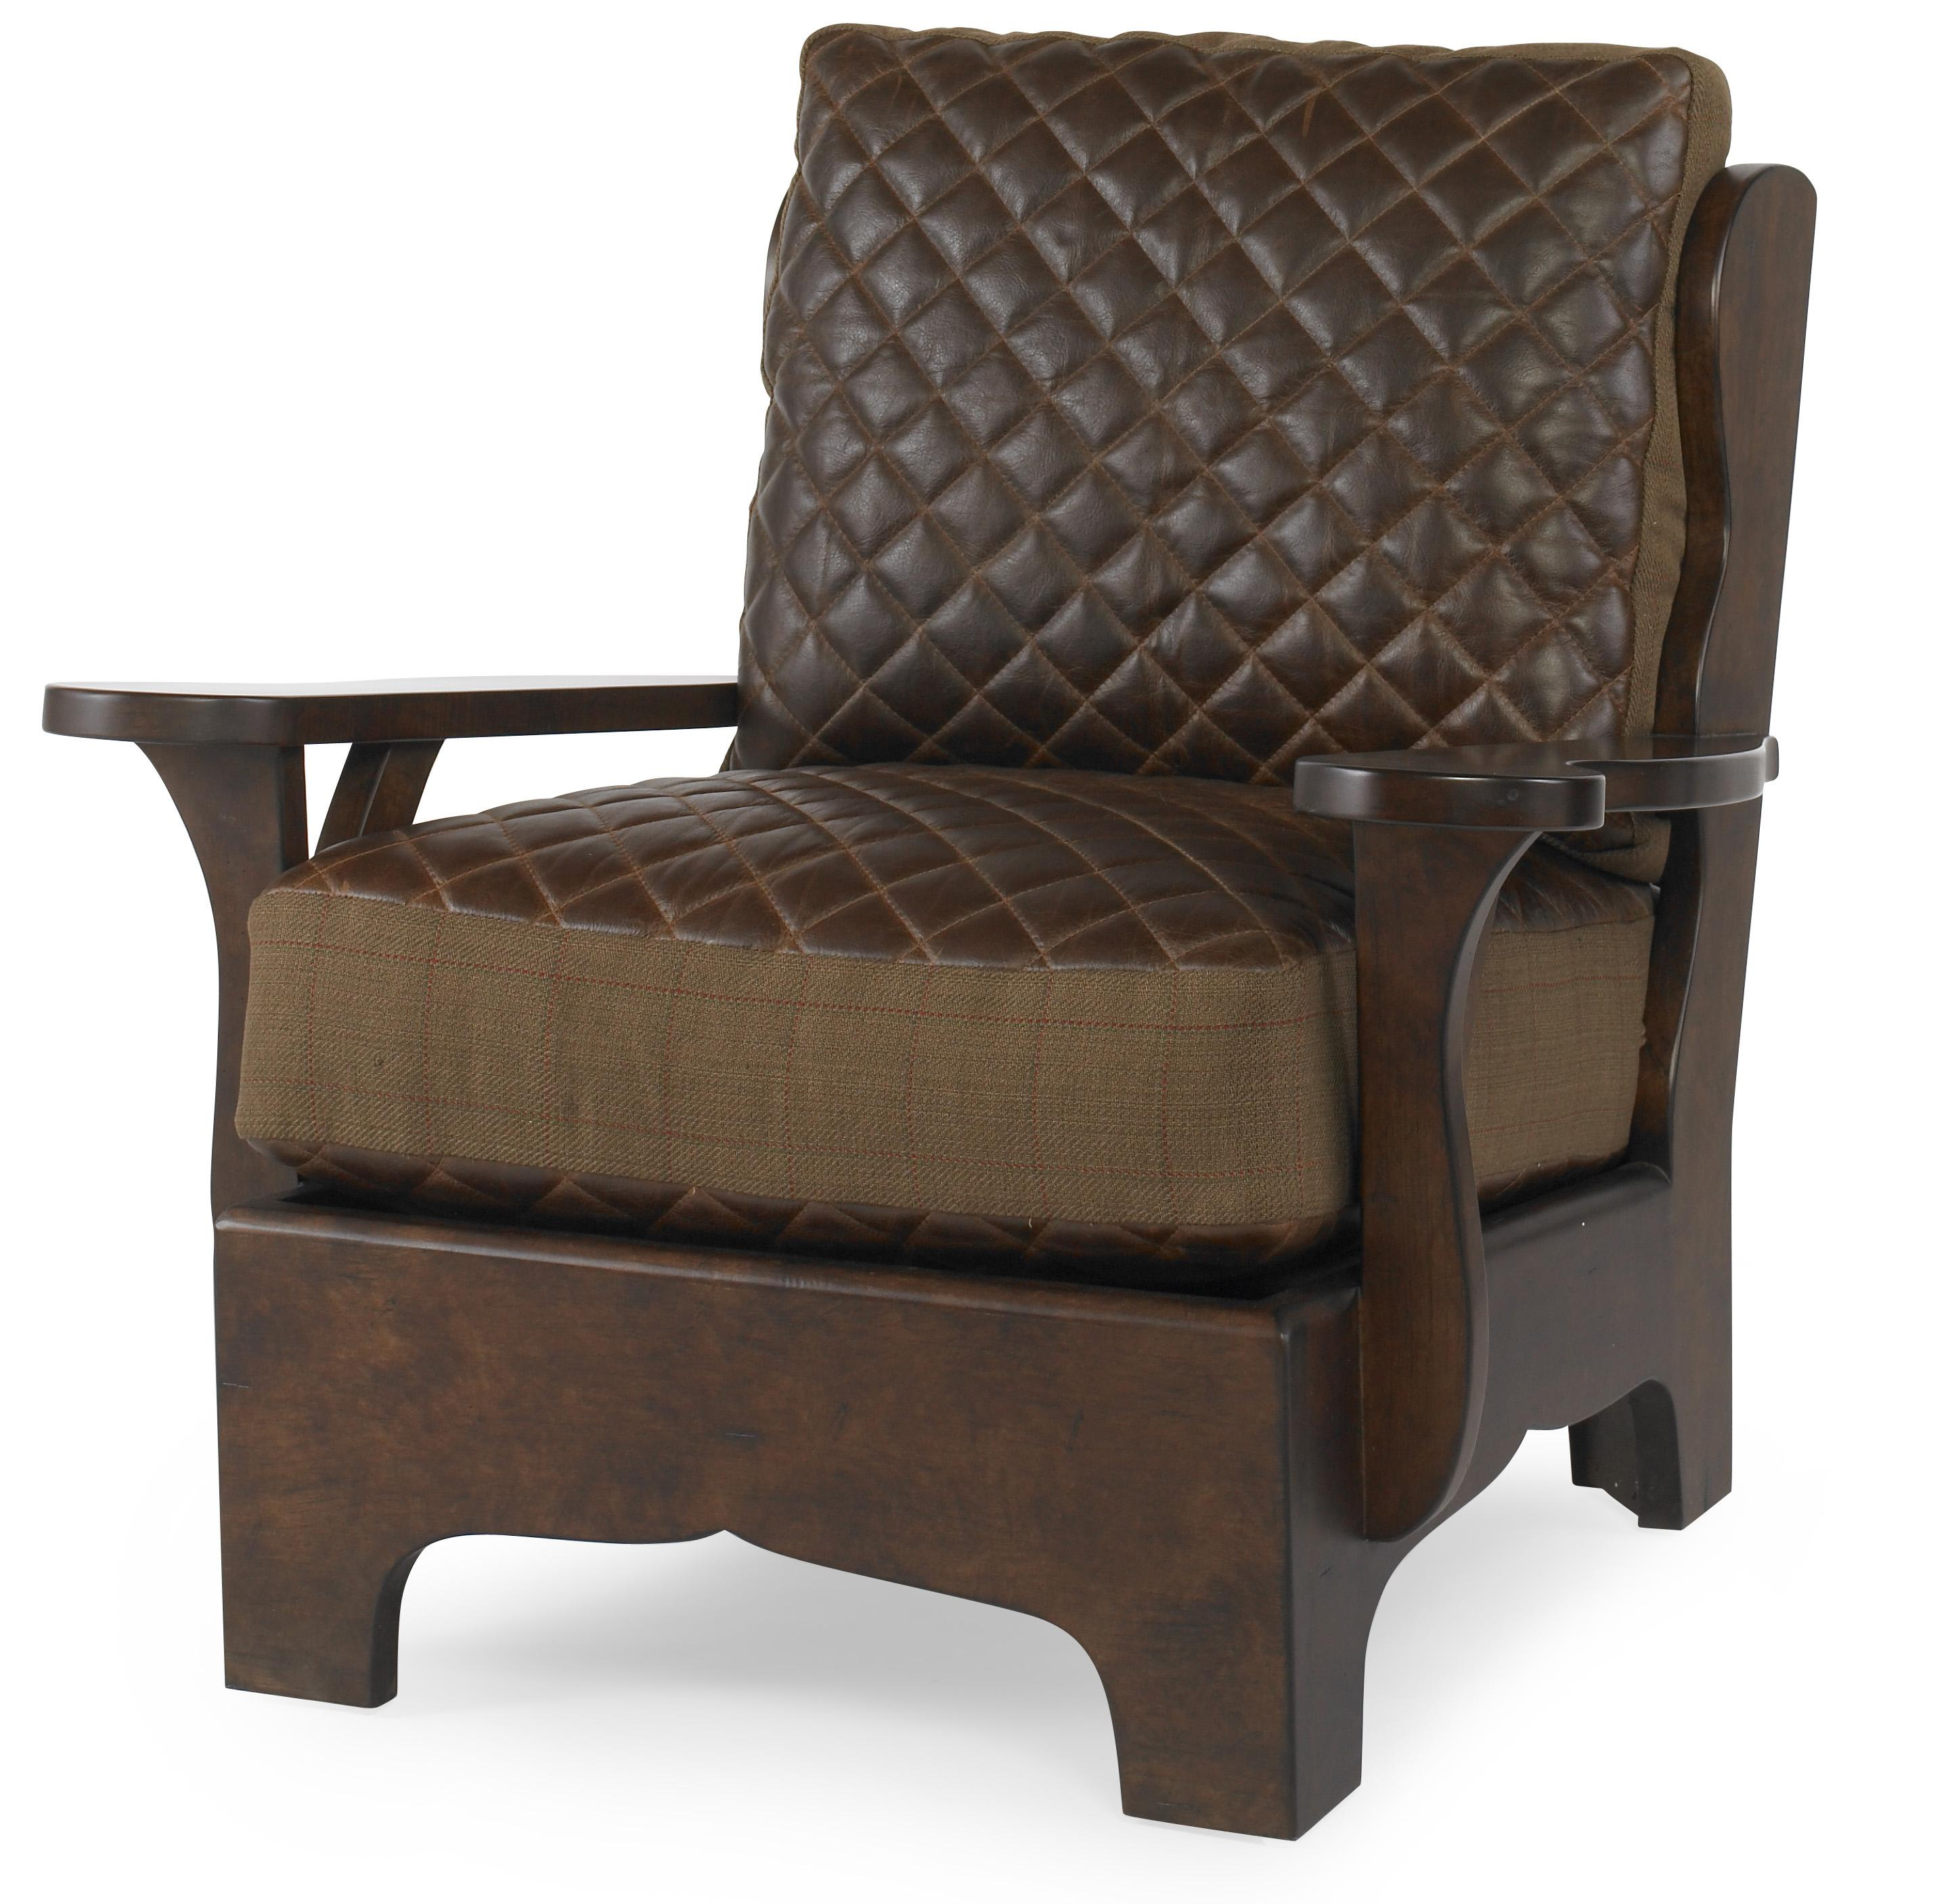 Bob Timberlake Porch Chair by Century at Baer's Furniture